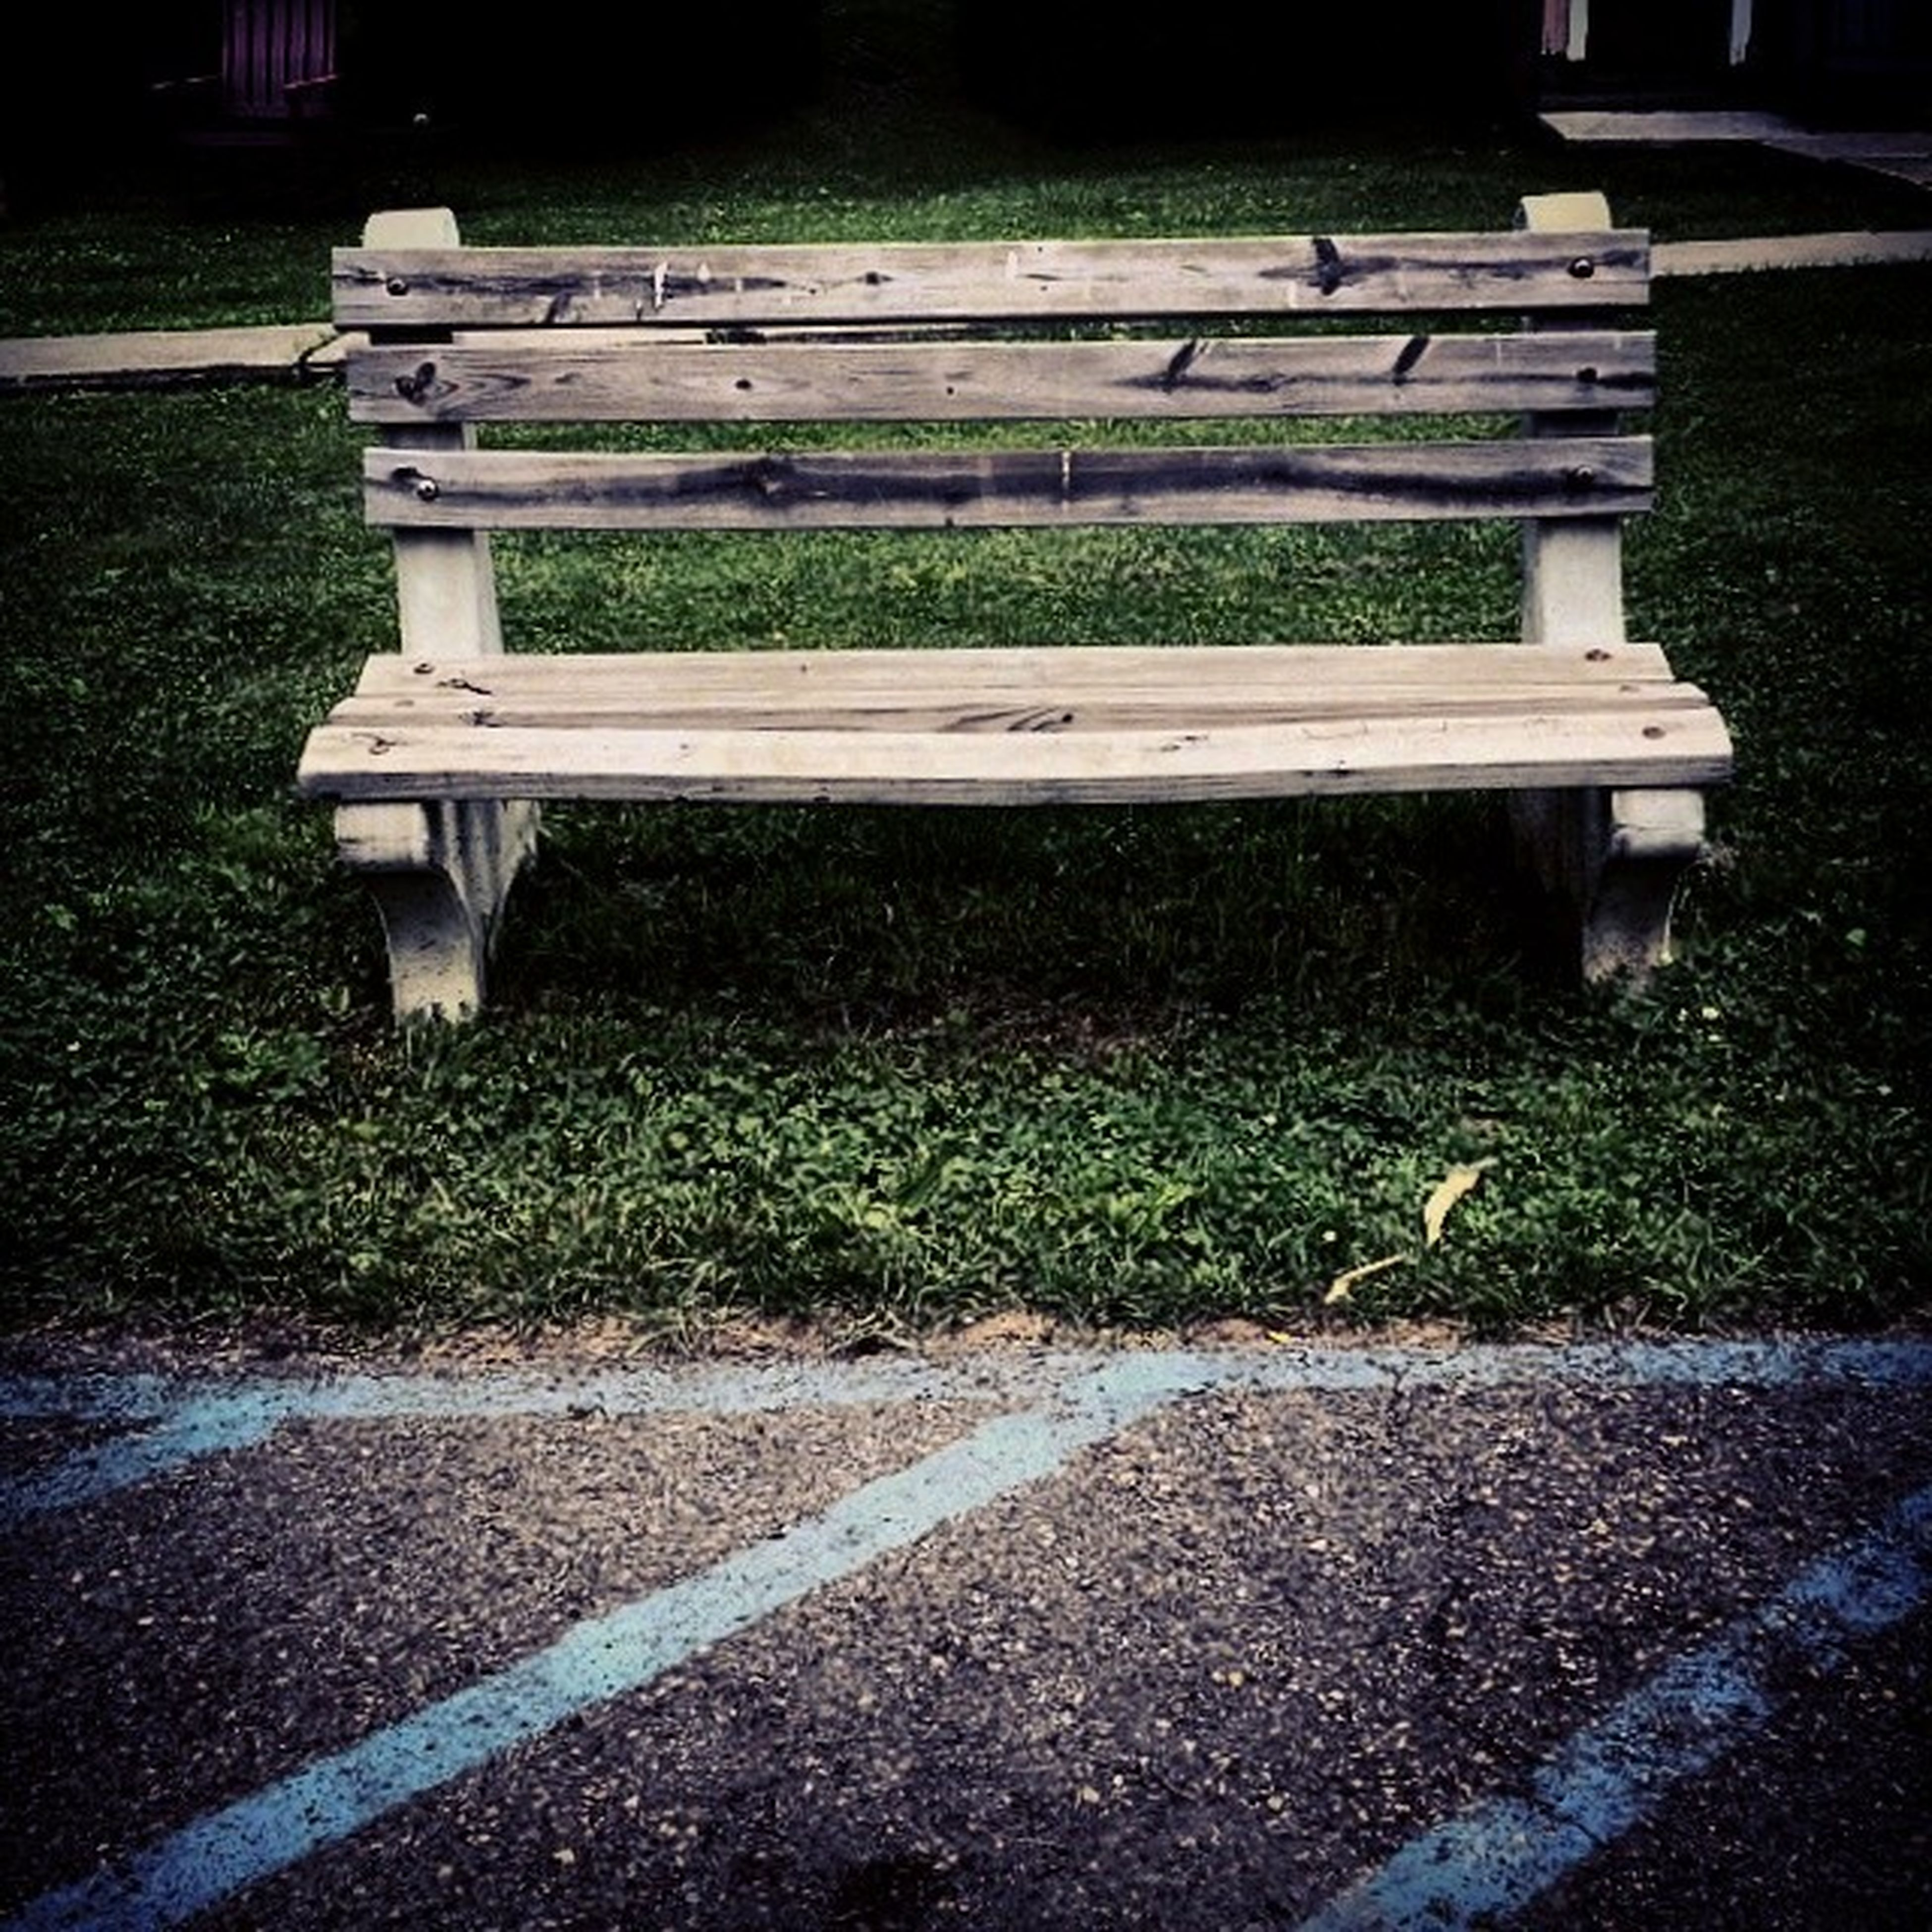 grass, bench, empty, park - man made space, field, park bench, wood - material, outdoors, sunlight, shadow, nature, absence, tranquility, day, park, grassy, lawn, no people, footpath, wooden